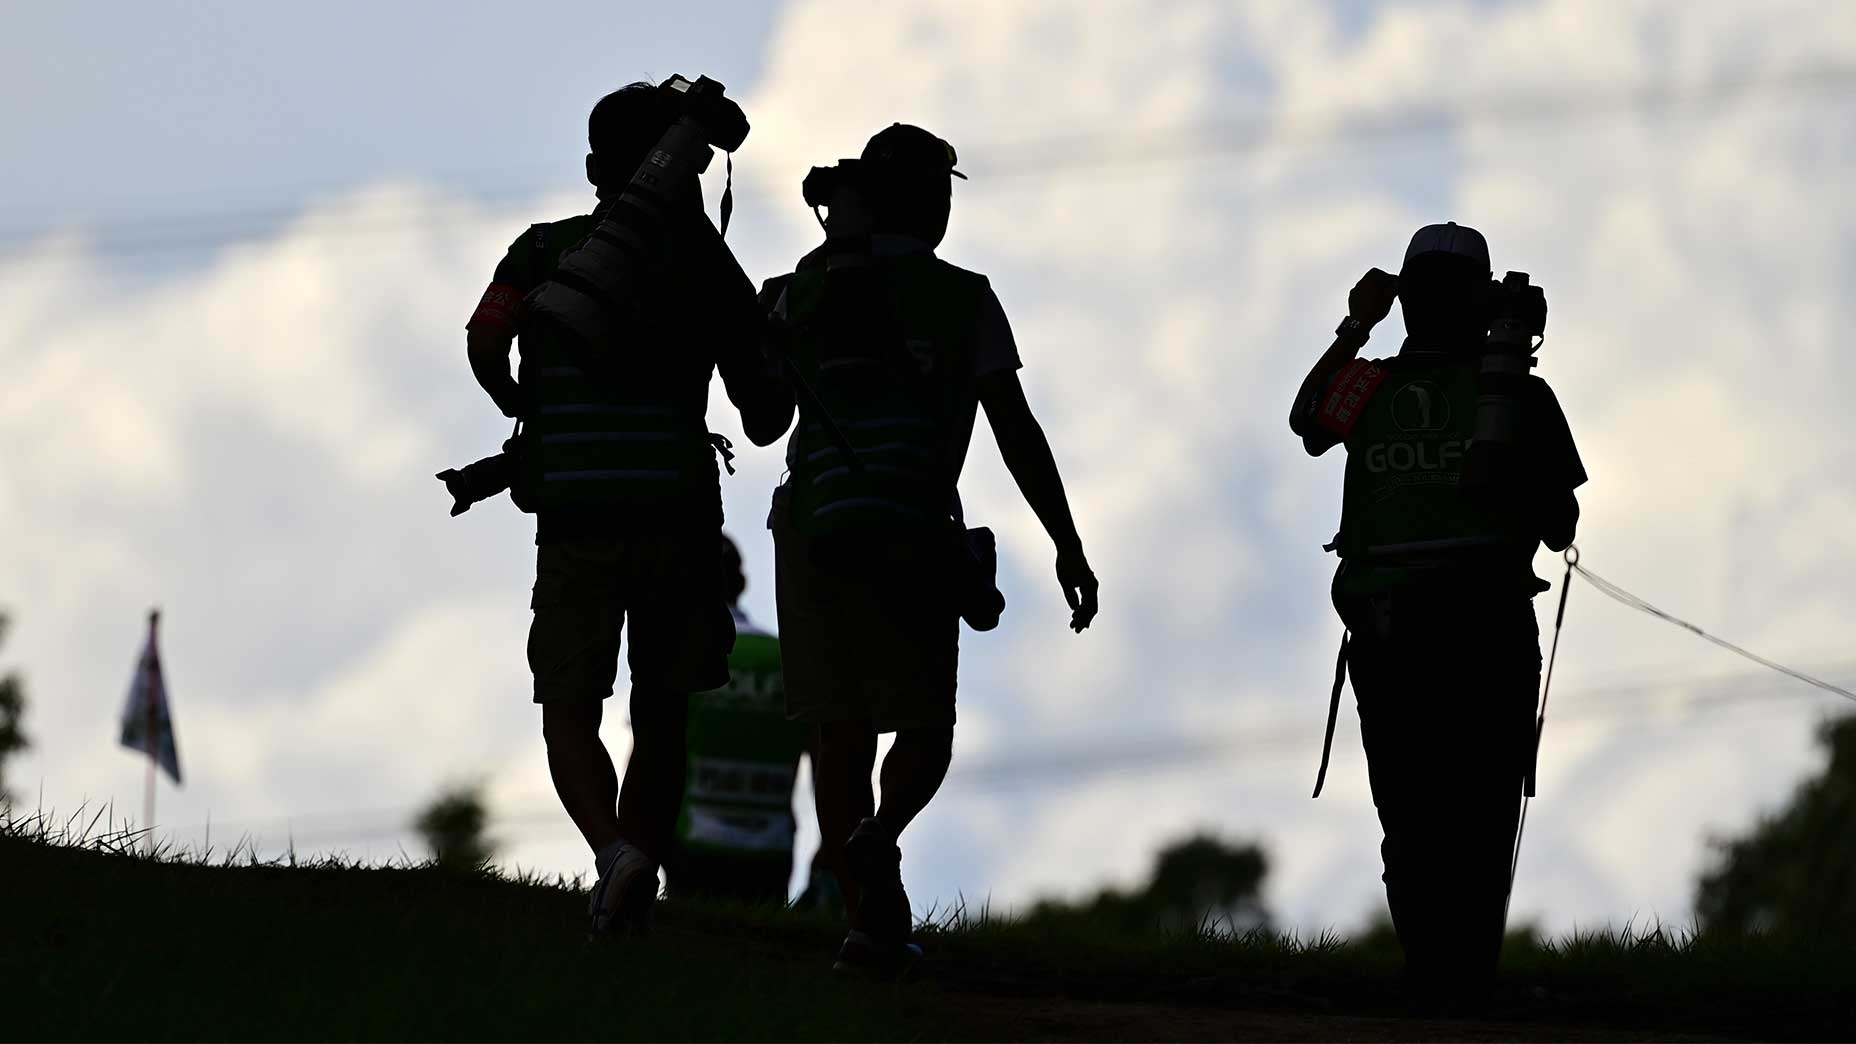 Reporters covering golf